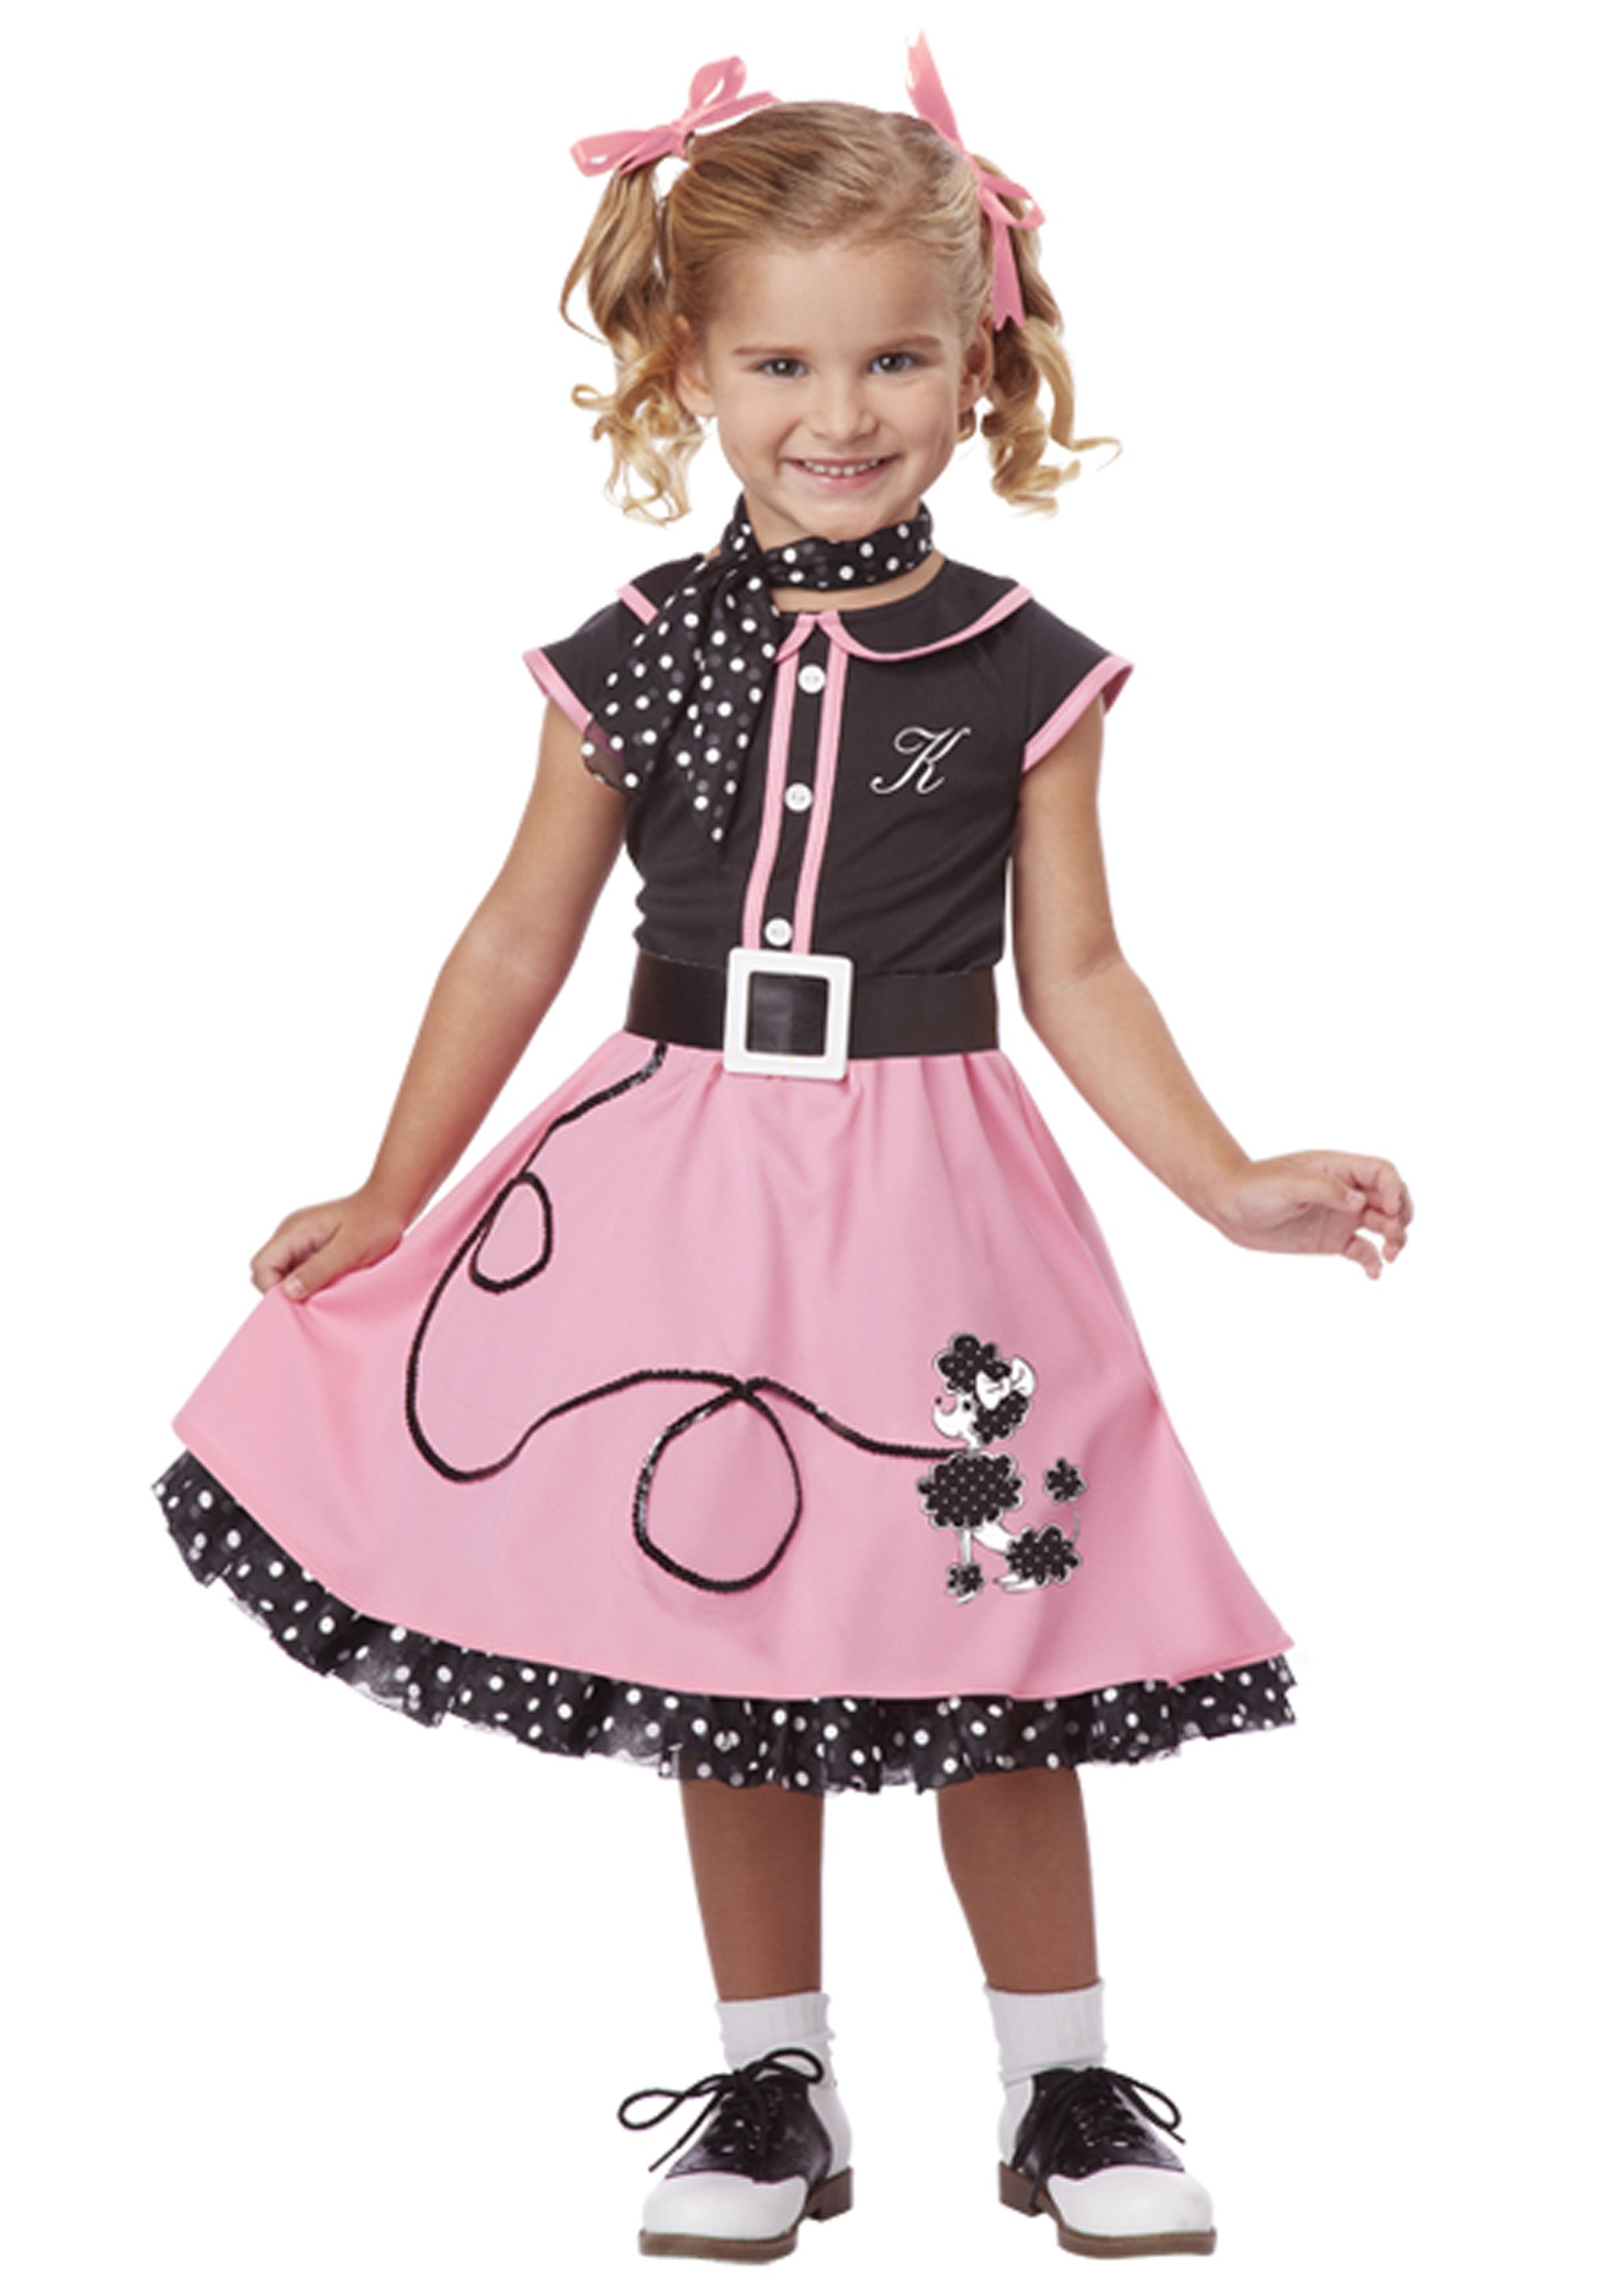 8961bed0f507 Toddler 50s Poodle Cutie Costume